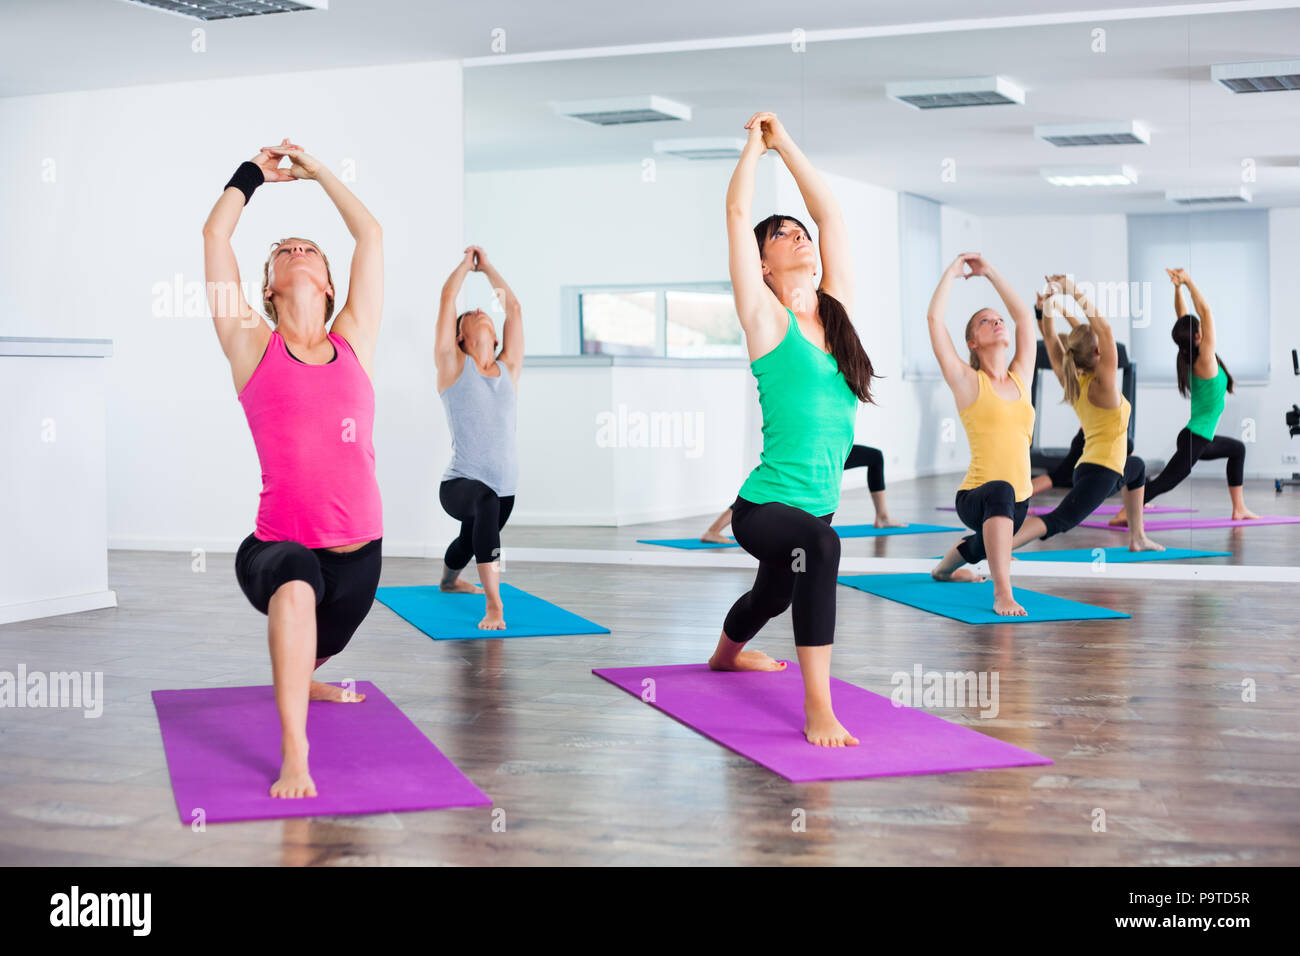 Four girls practicing yoga, , Virabhadrasana / Warrior pose - Stock Image